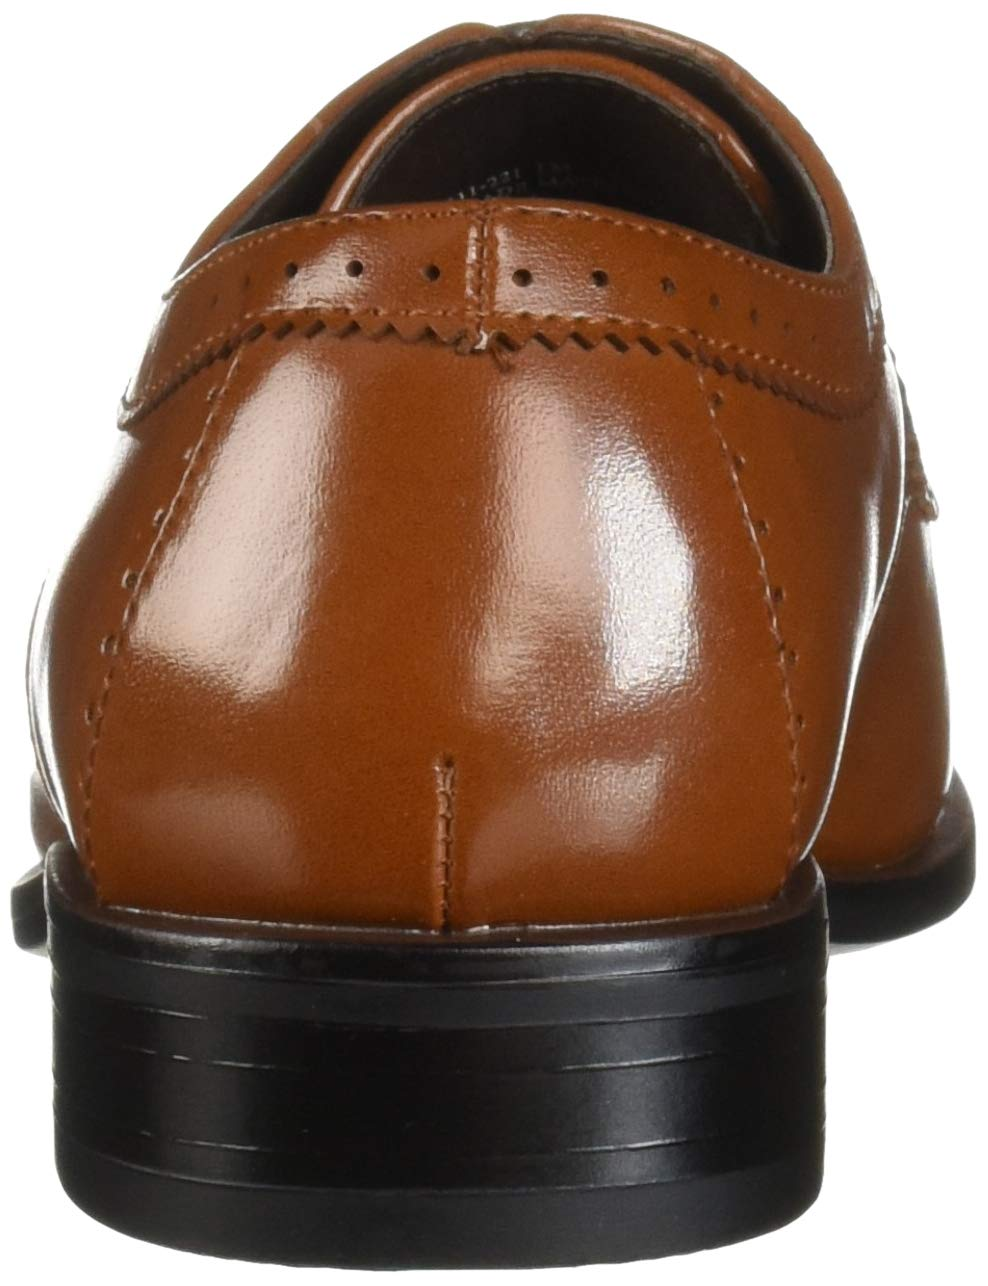 STACY ADAMS Unisex Sanborn Perfed Cap Toe Lace-Up Oxford, Cognac 5 M US Big Kid by STACY ADAMS (Image #2)